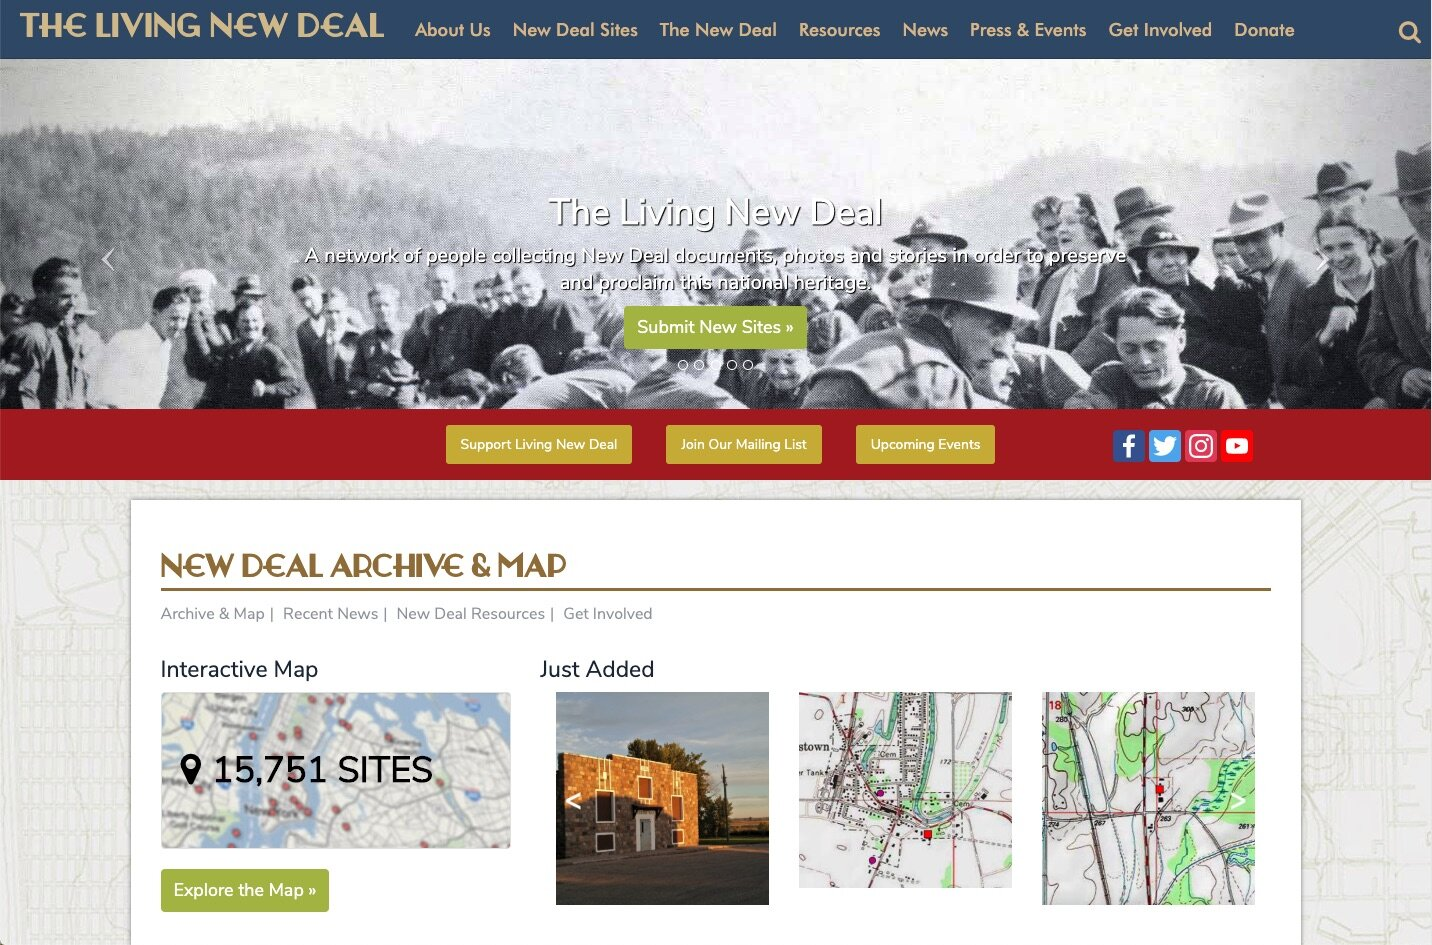 Screenshot 2. The Living New Deal home page, 2019.